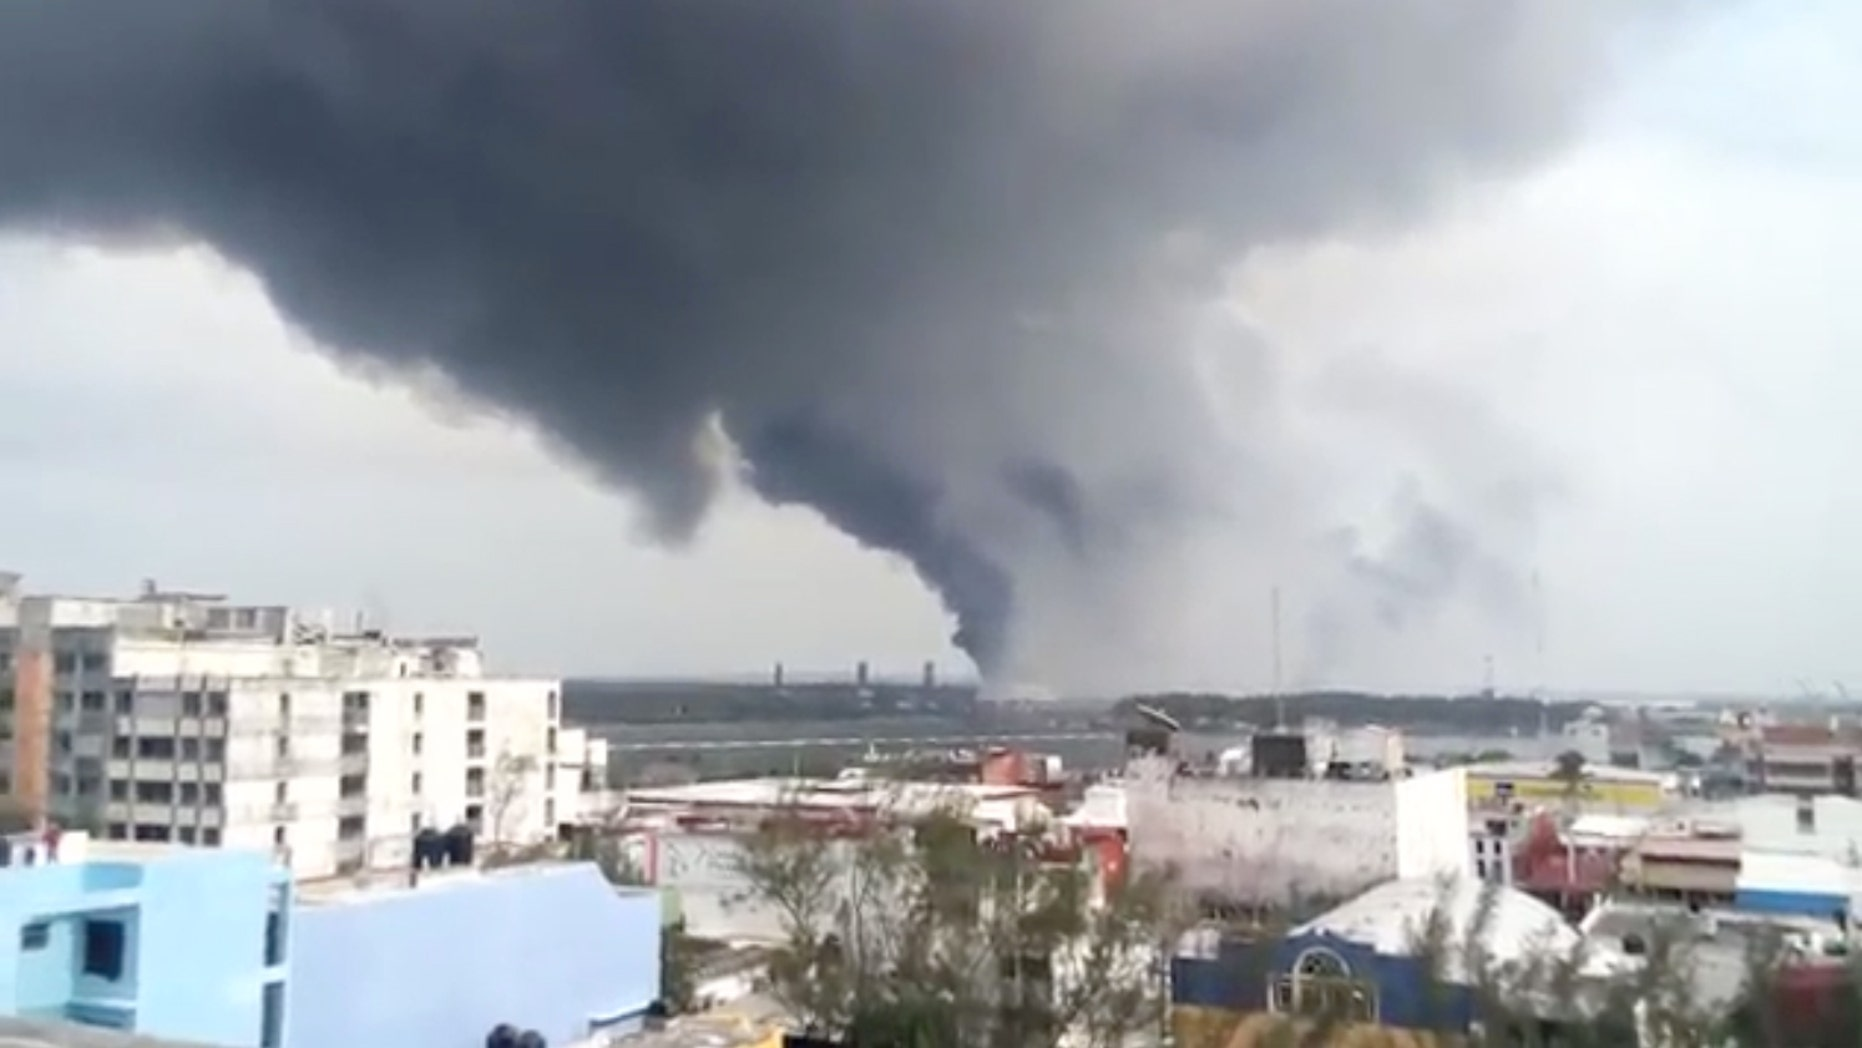 BEST QUALITY AVAILABLE - In this video grab a large plume of smoke rises from the Mexican State oil company Petroleos Mexicanos' petrochemical plant after an explosion in Coatzacoalcos, Mexico, Wednesday, April 20, 2016. The explosion killed several people, injuring dozens and sending flames and a toxin-filled cloud into the air, officials said. (Omar Diaz/Oaxaca Integro via AP)